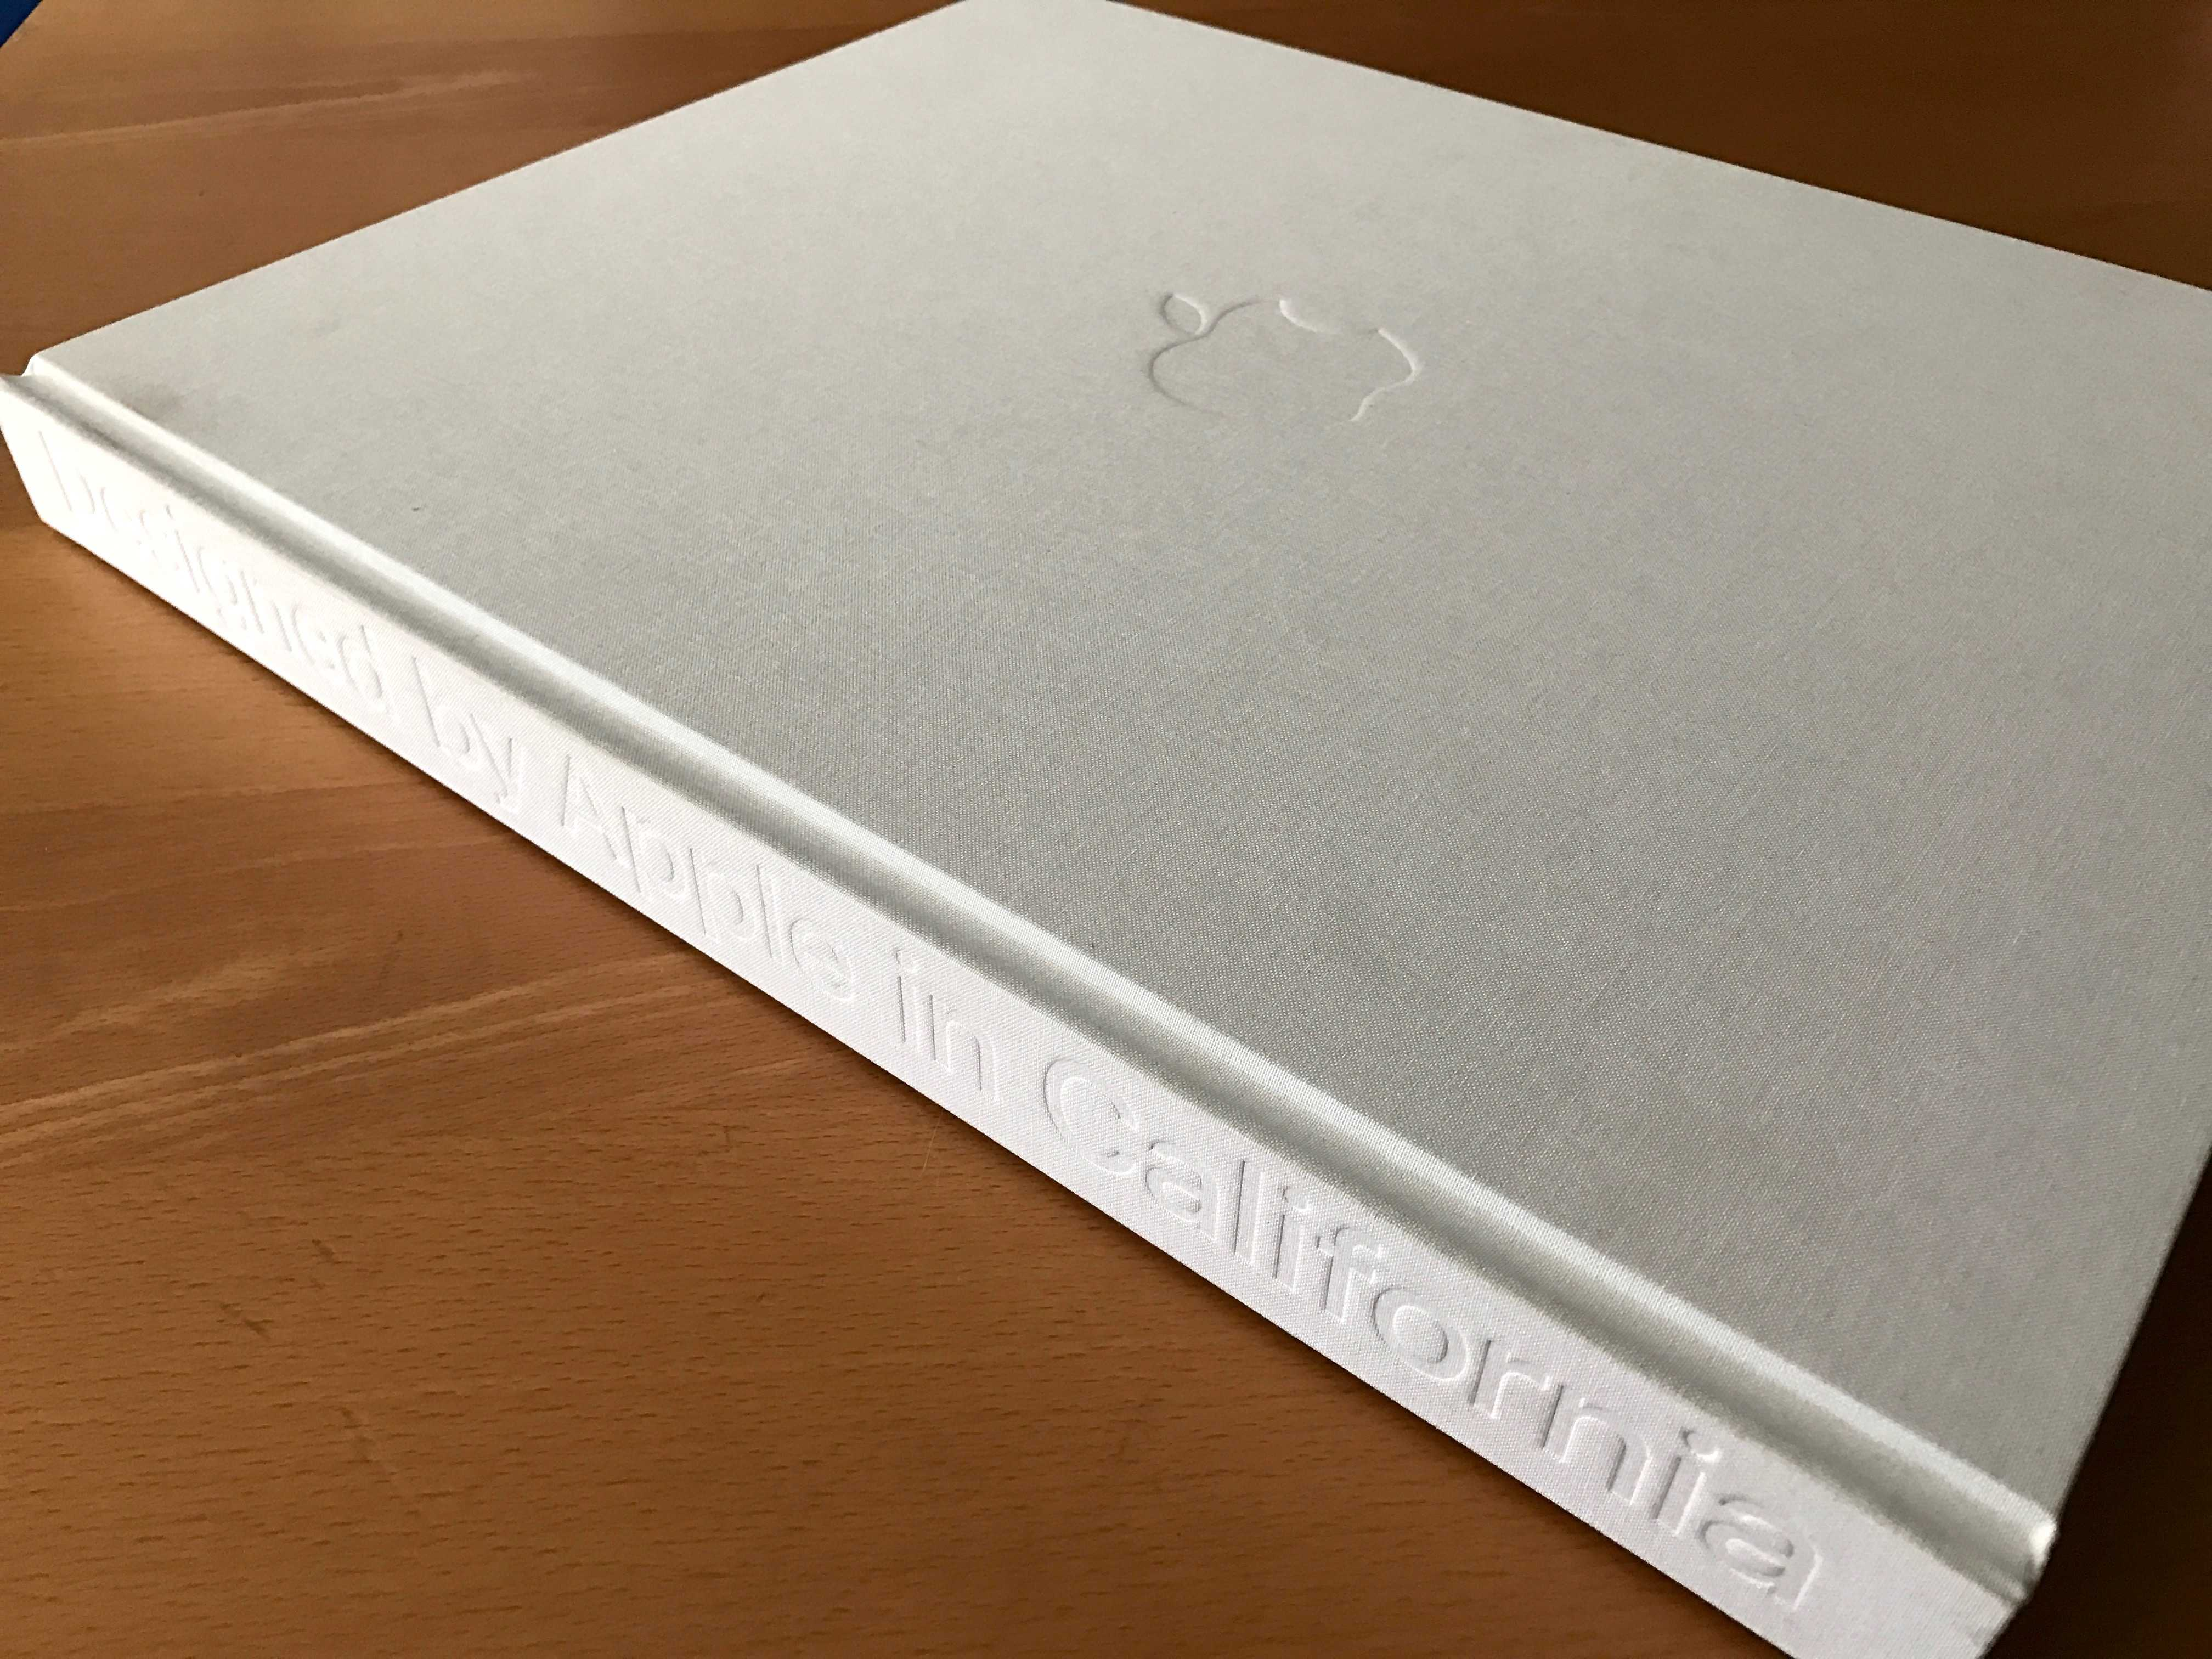 Jony Ive S Design Book Is Much More Than An Ego Trip